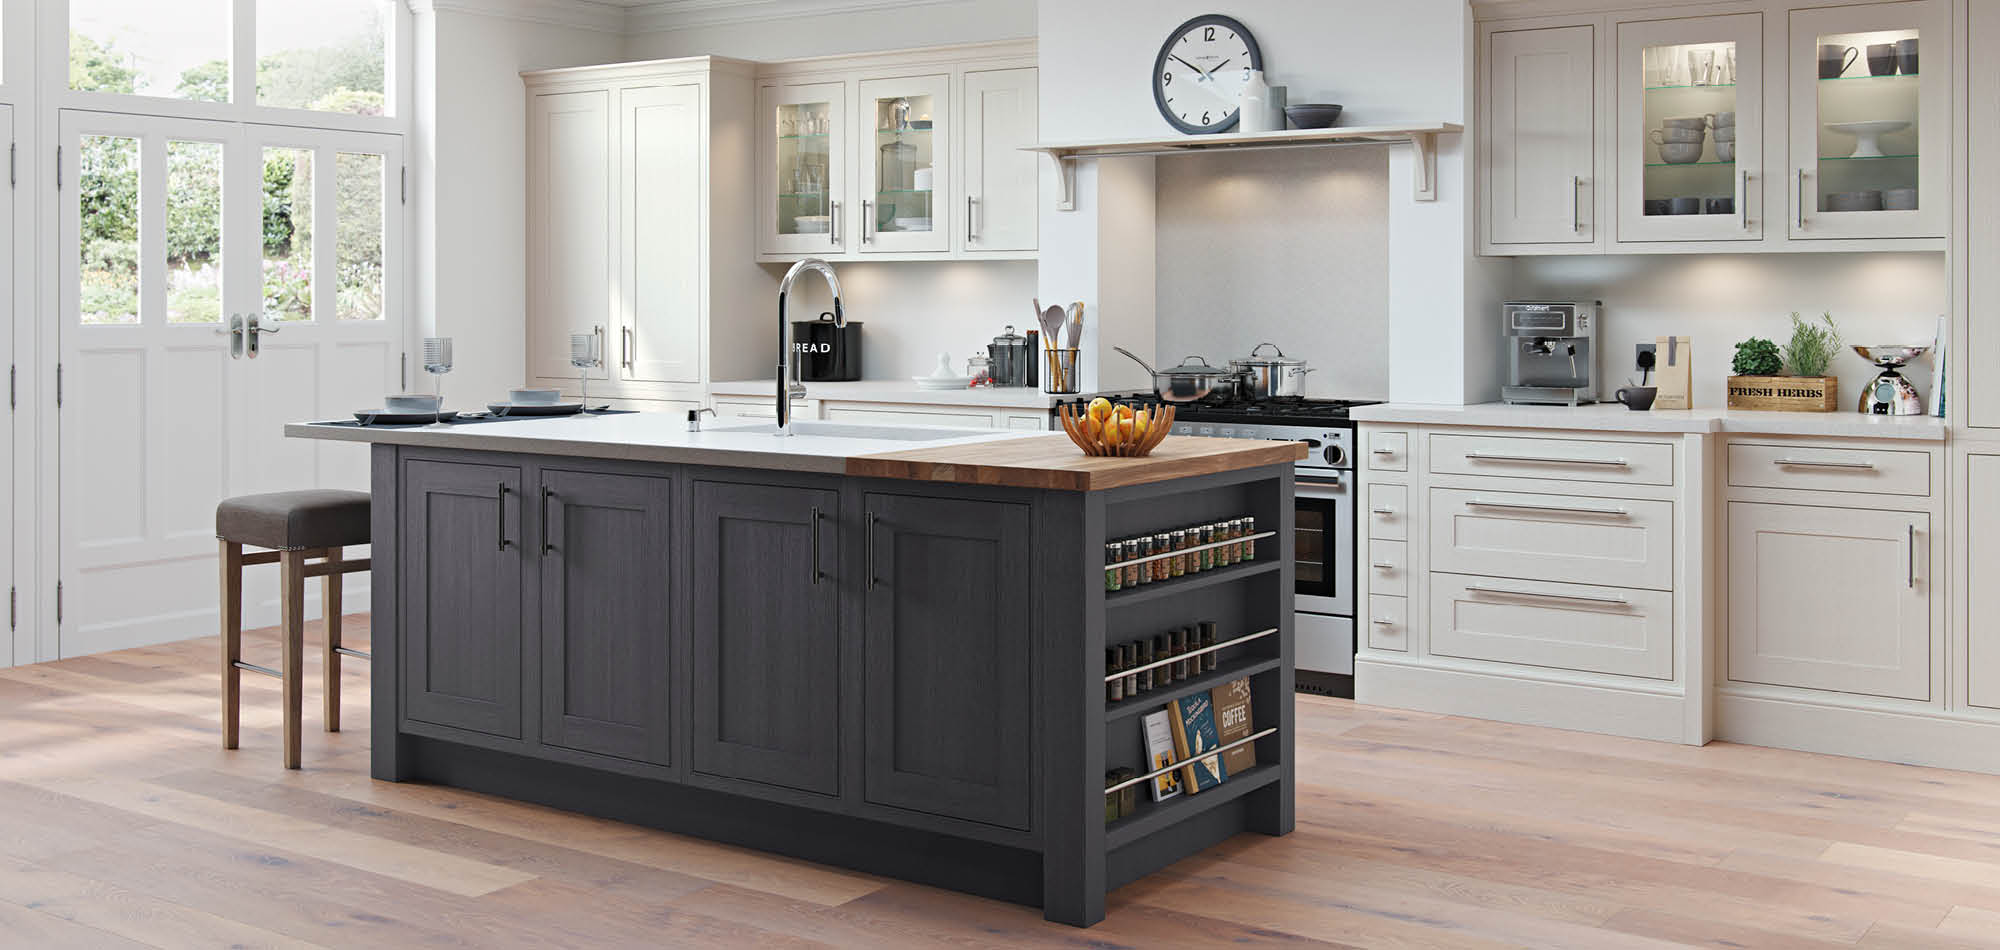 Chalk White Amp Gunmetal Grey Mereway Kitchens